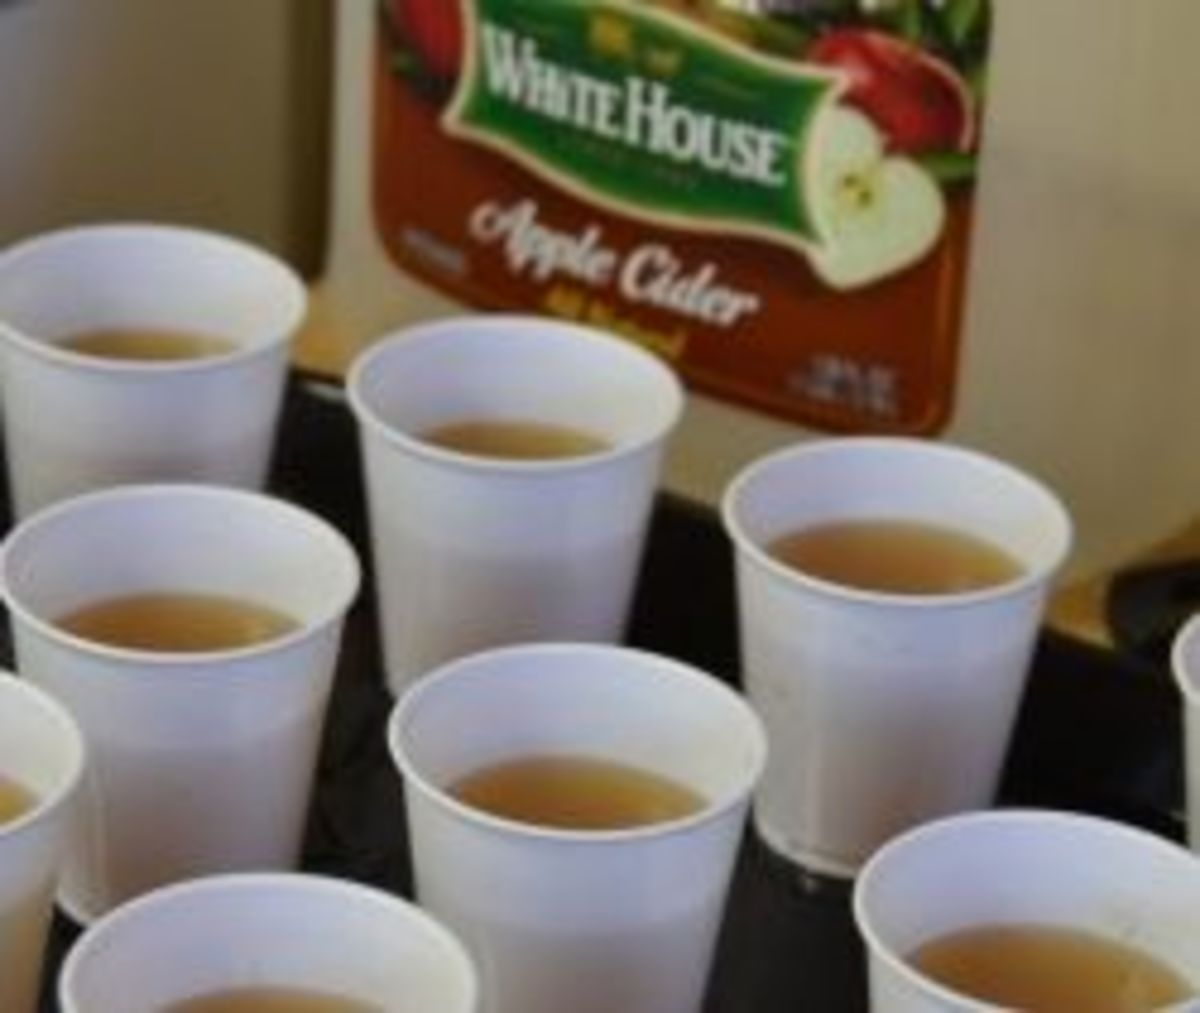 Apple Cider - Photo taken by Michelle Harrison, who participates in our class